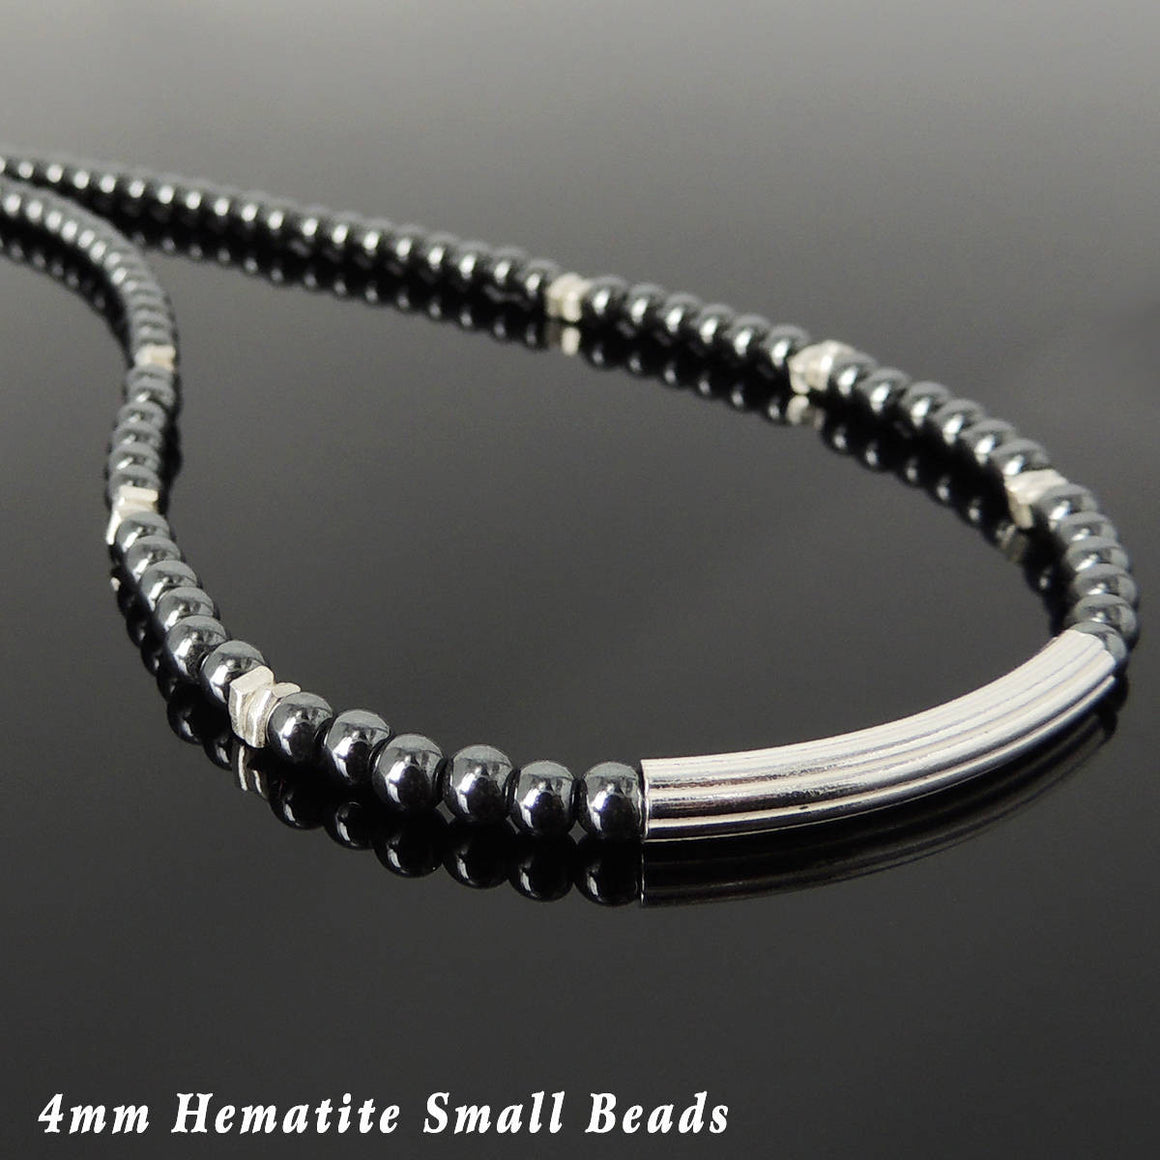 4mm Hematite Healing Gemstone Necklace with S925 Sterling Silver Slim Elegant Charm & Clasp - Handmade by Gem & Silver NK189